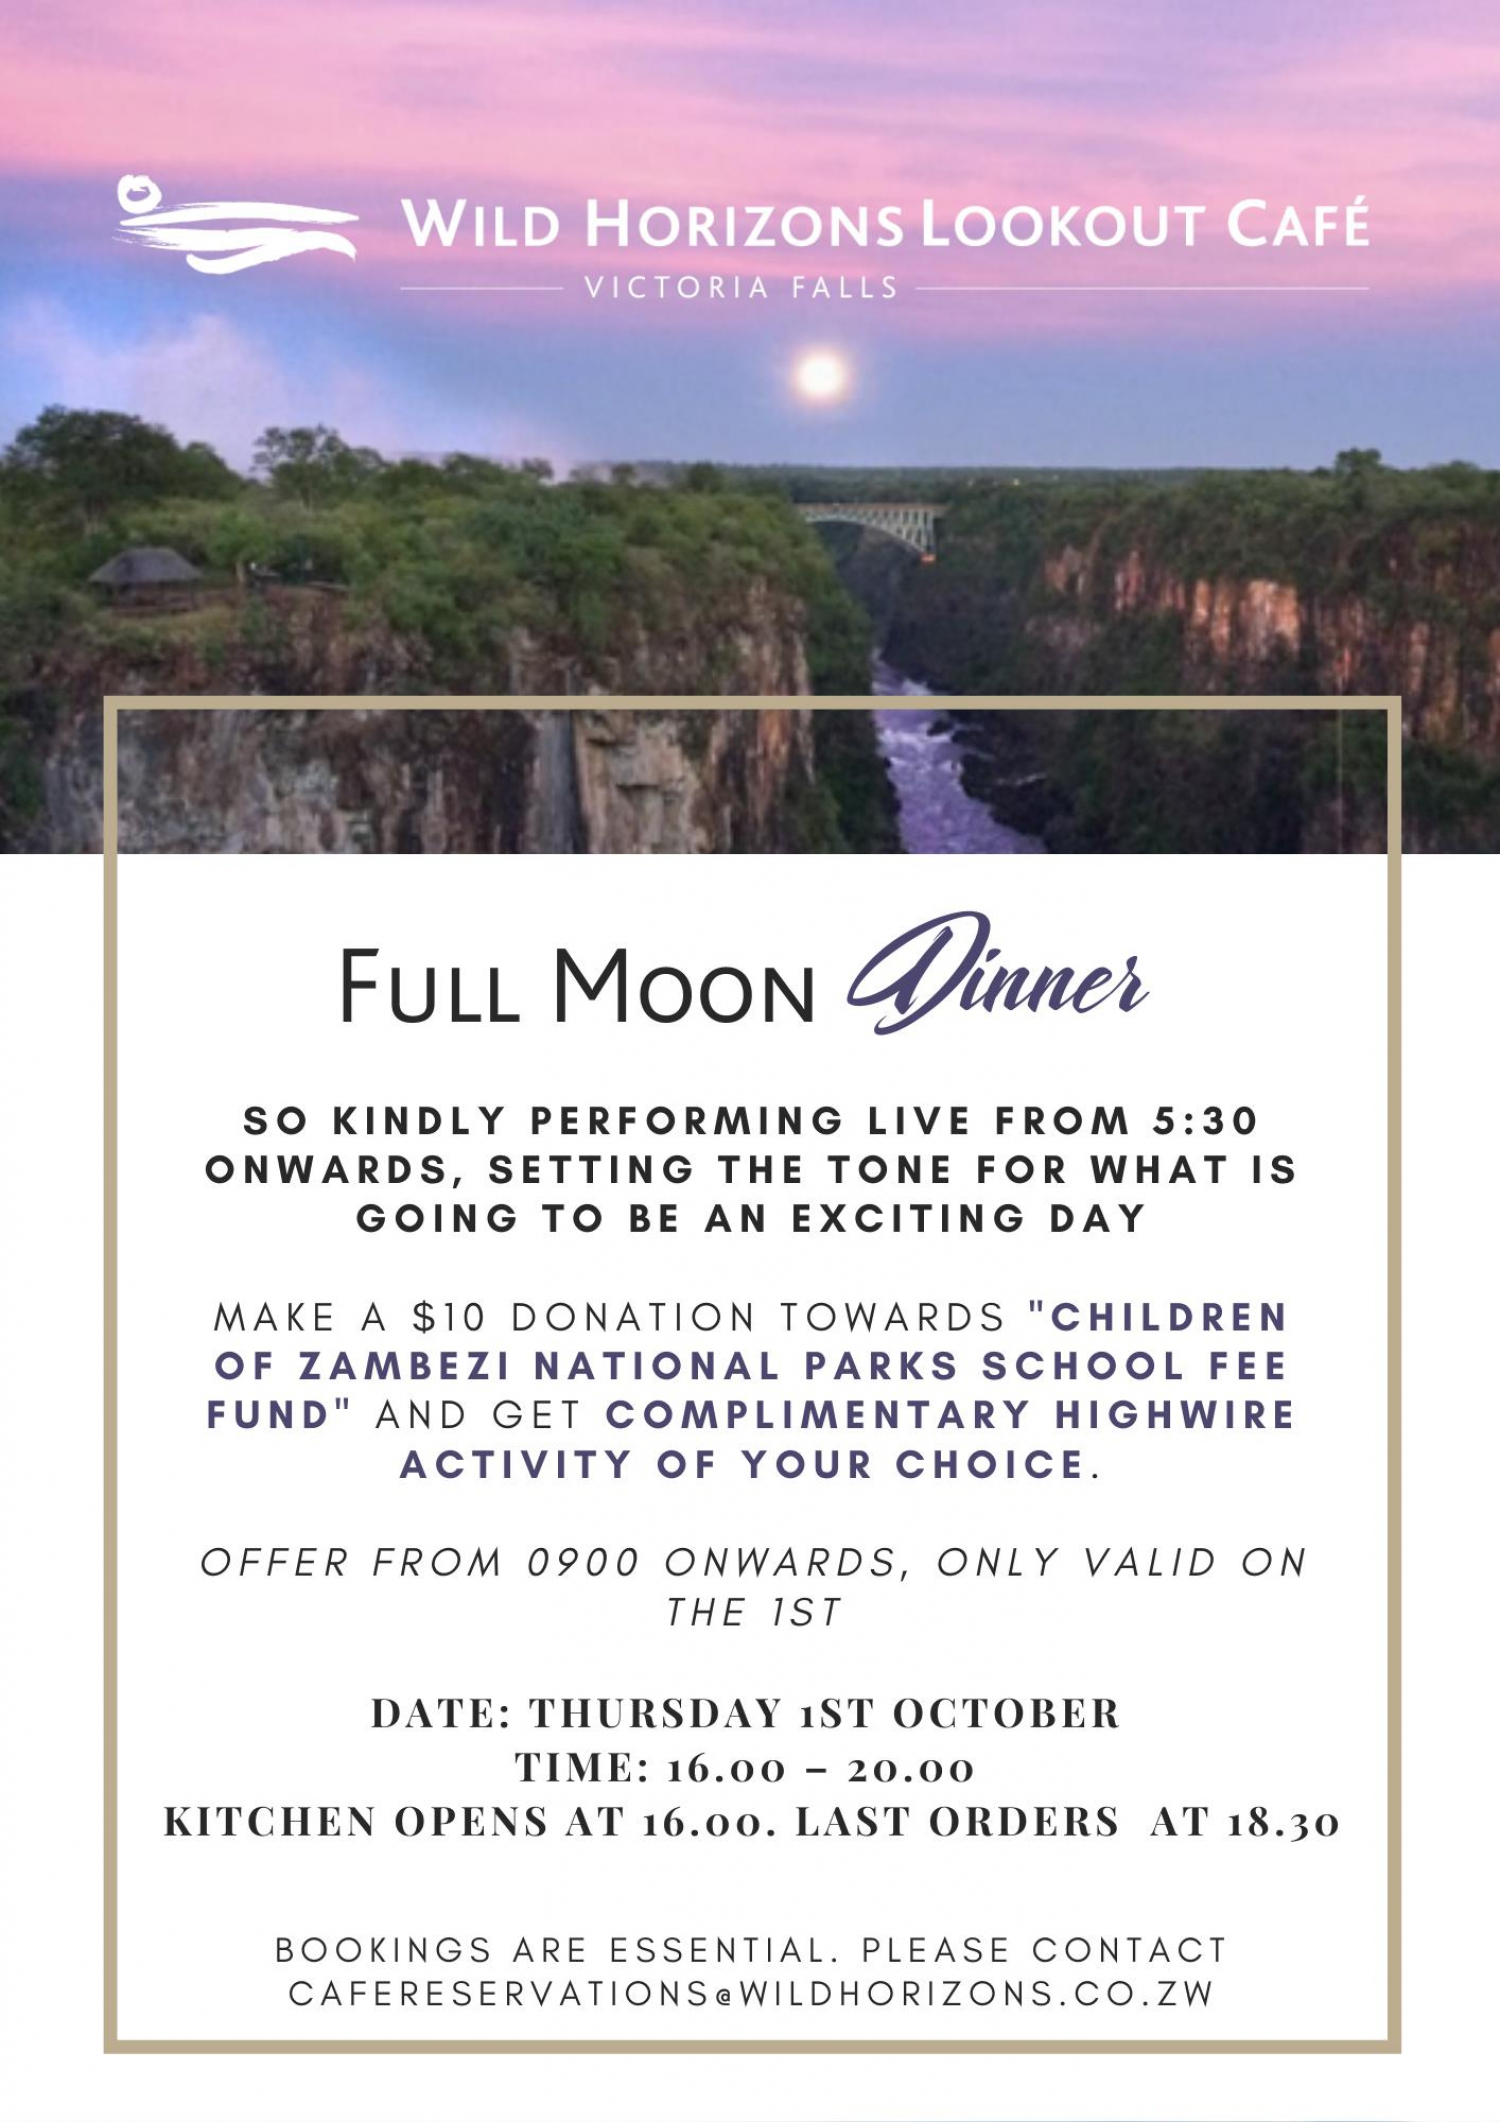 Full Moon Dinner At Lookout Cafe